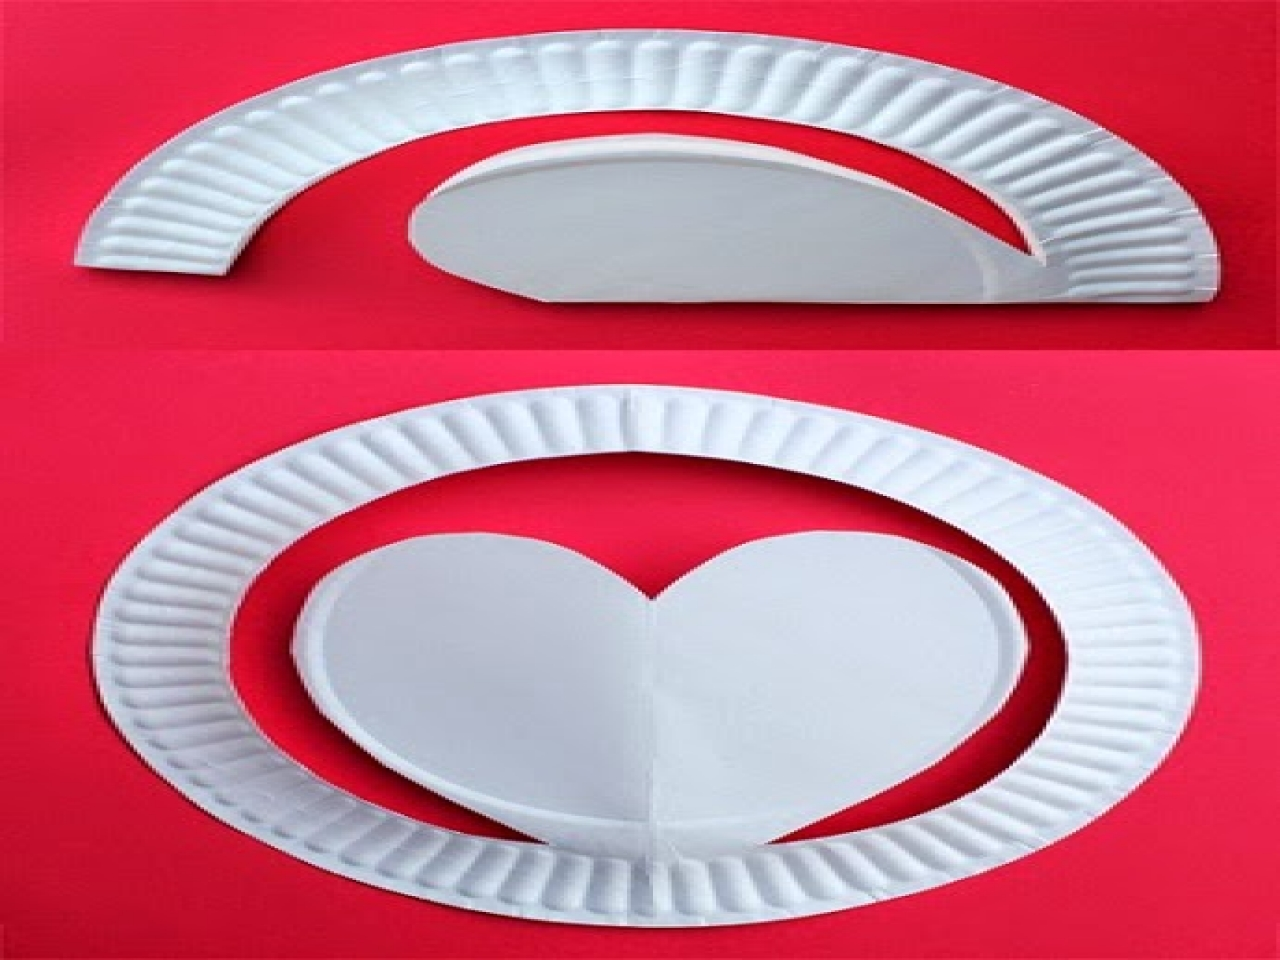 Crafty Inspirations – 10 Valentine's Day Paper Plate Crafts for ...